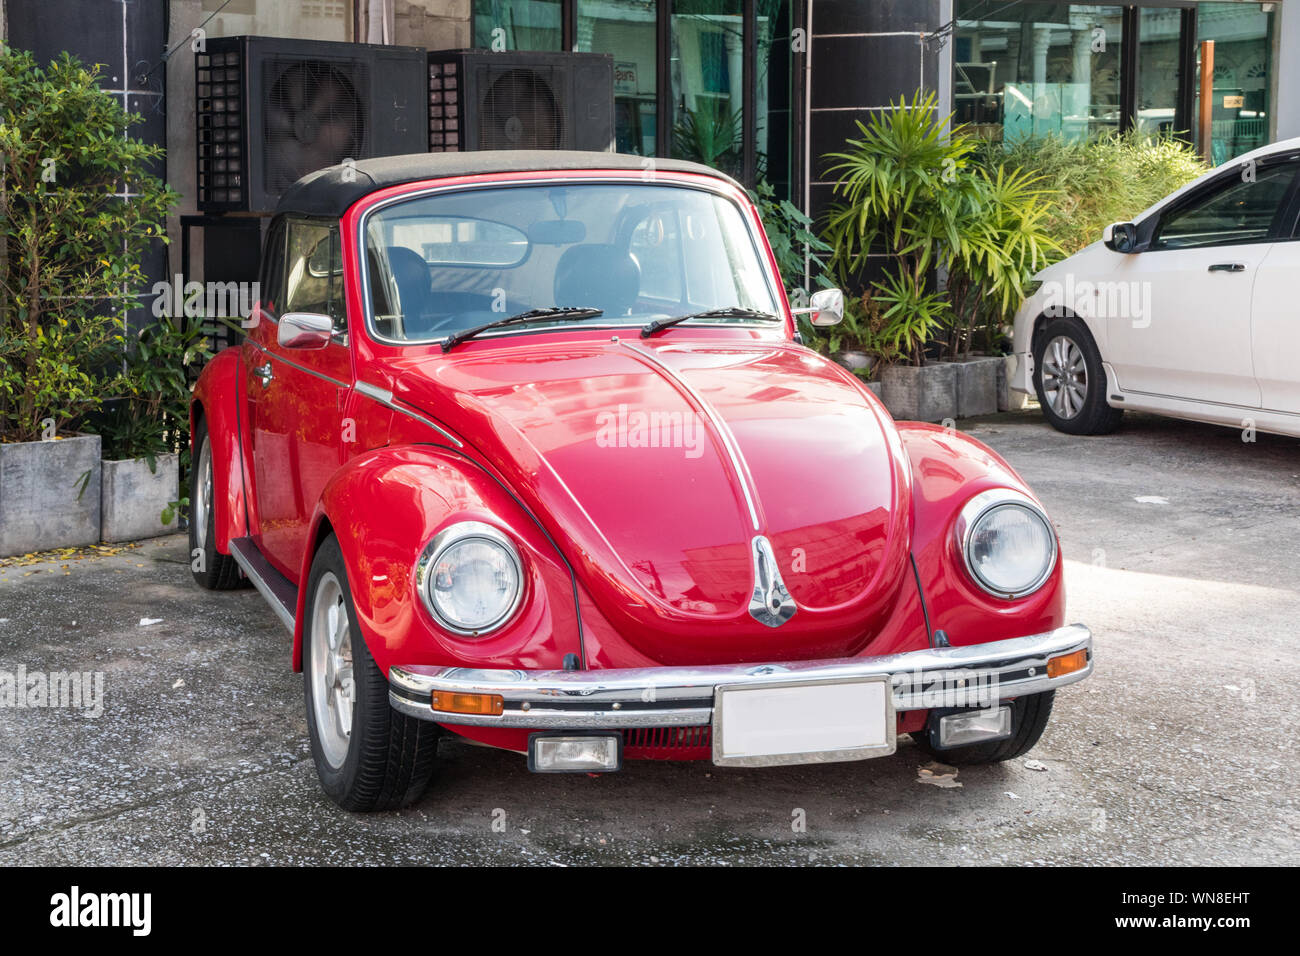 Phuket, Thailand - July 23rd 2019: Classic Volkswagen convertible Beetle in Old Phuket Town. The car is a worldwide icon. Stock Photo